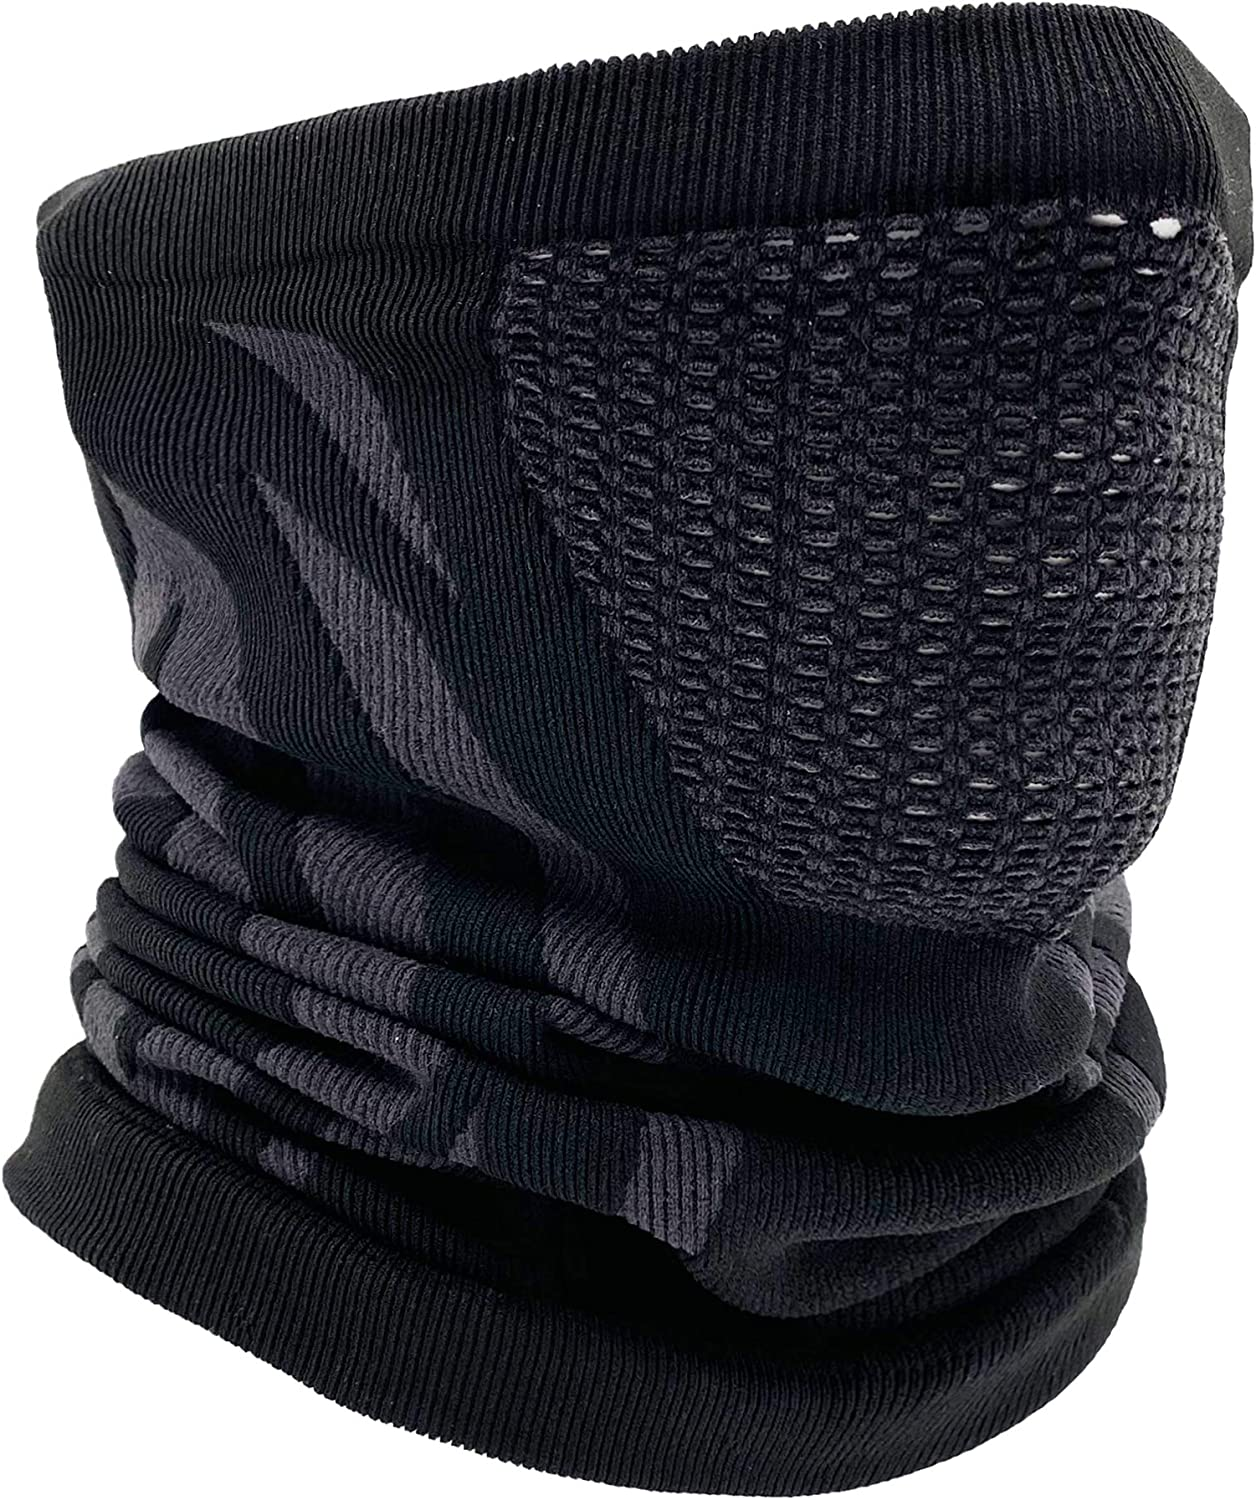 Winter Neck Warmer, Neck Gaiter Face Mask Scarf for Men Women Cold Weather Skiing Running Cycling Breathable Windproof